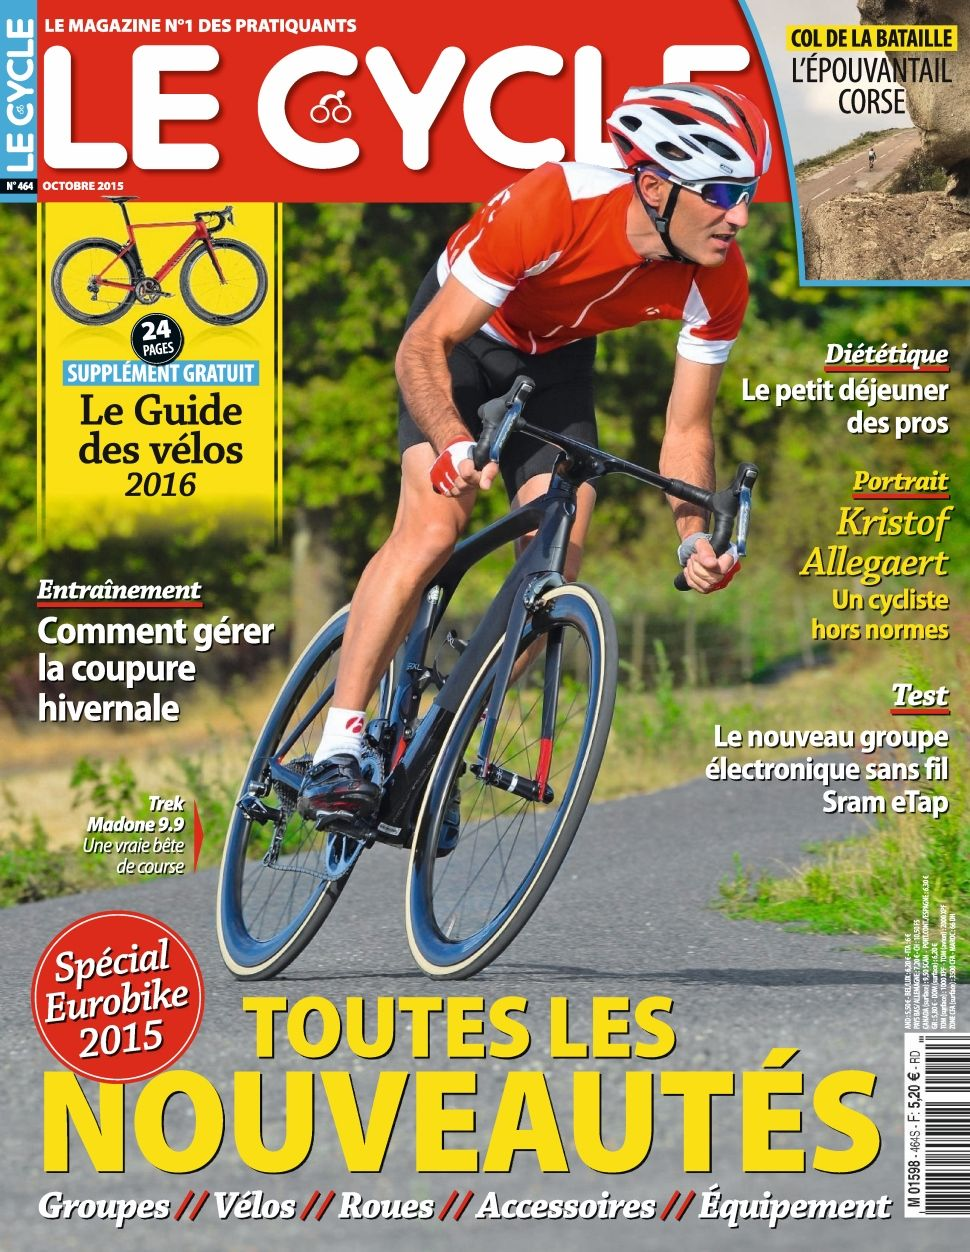 Le Cycle 464 - Octobre 2015